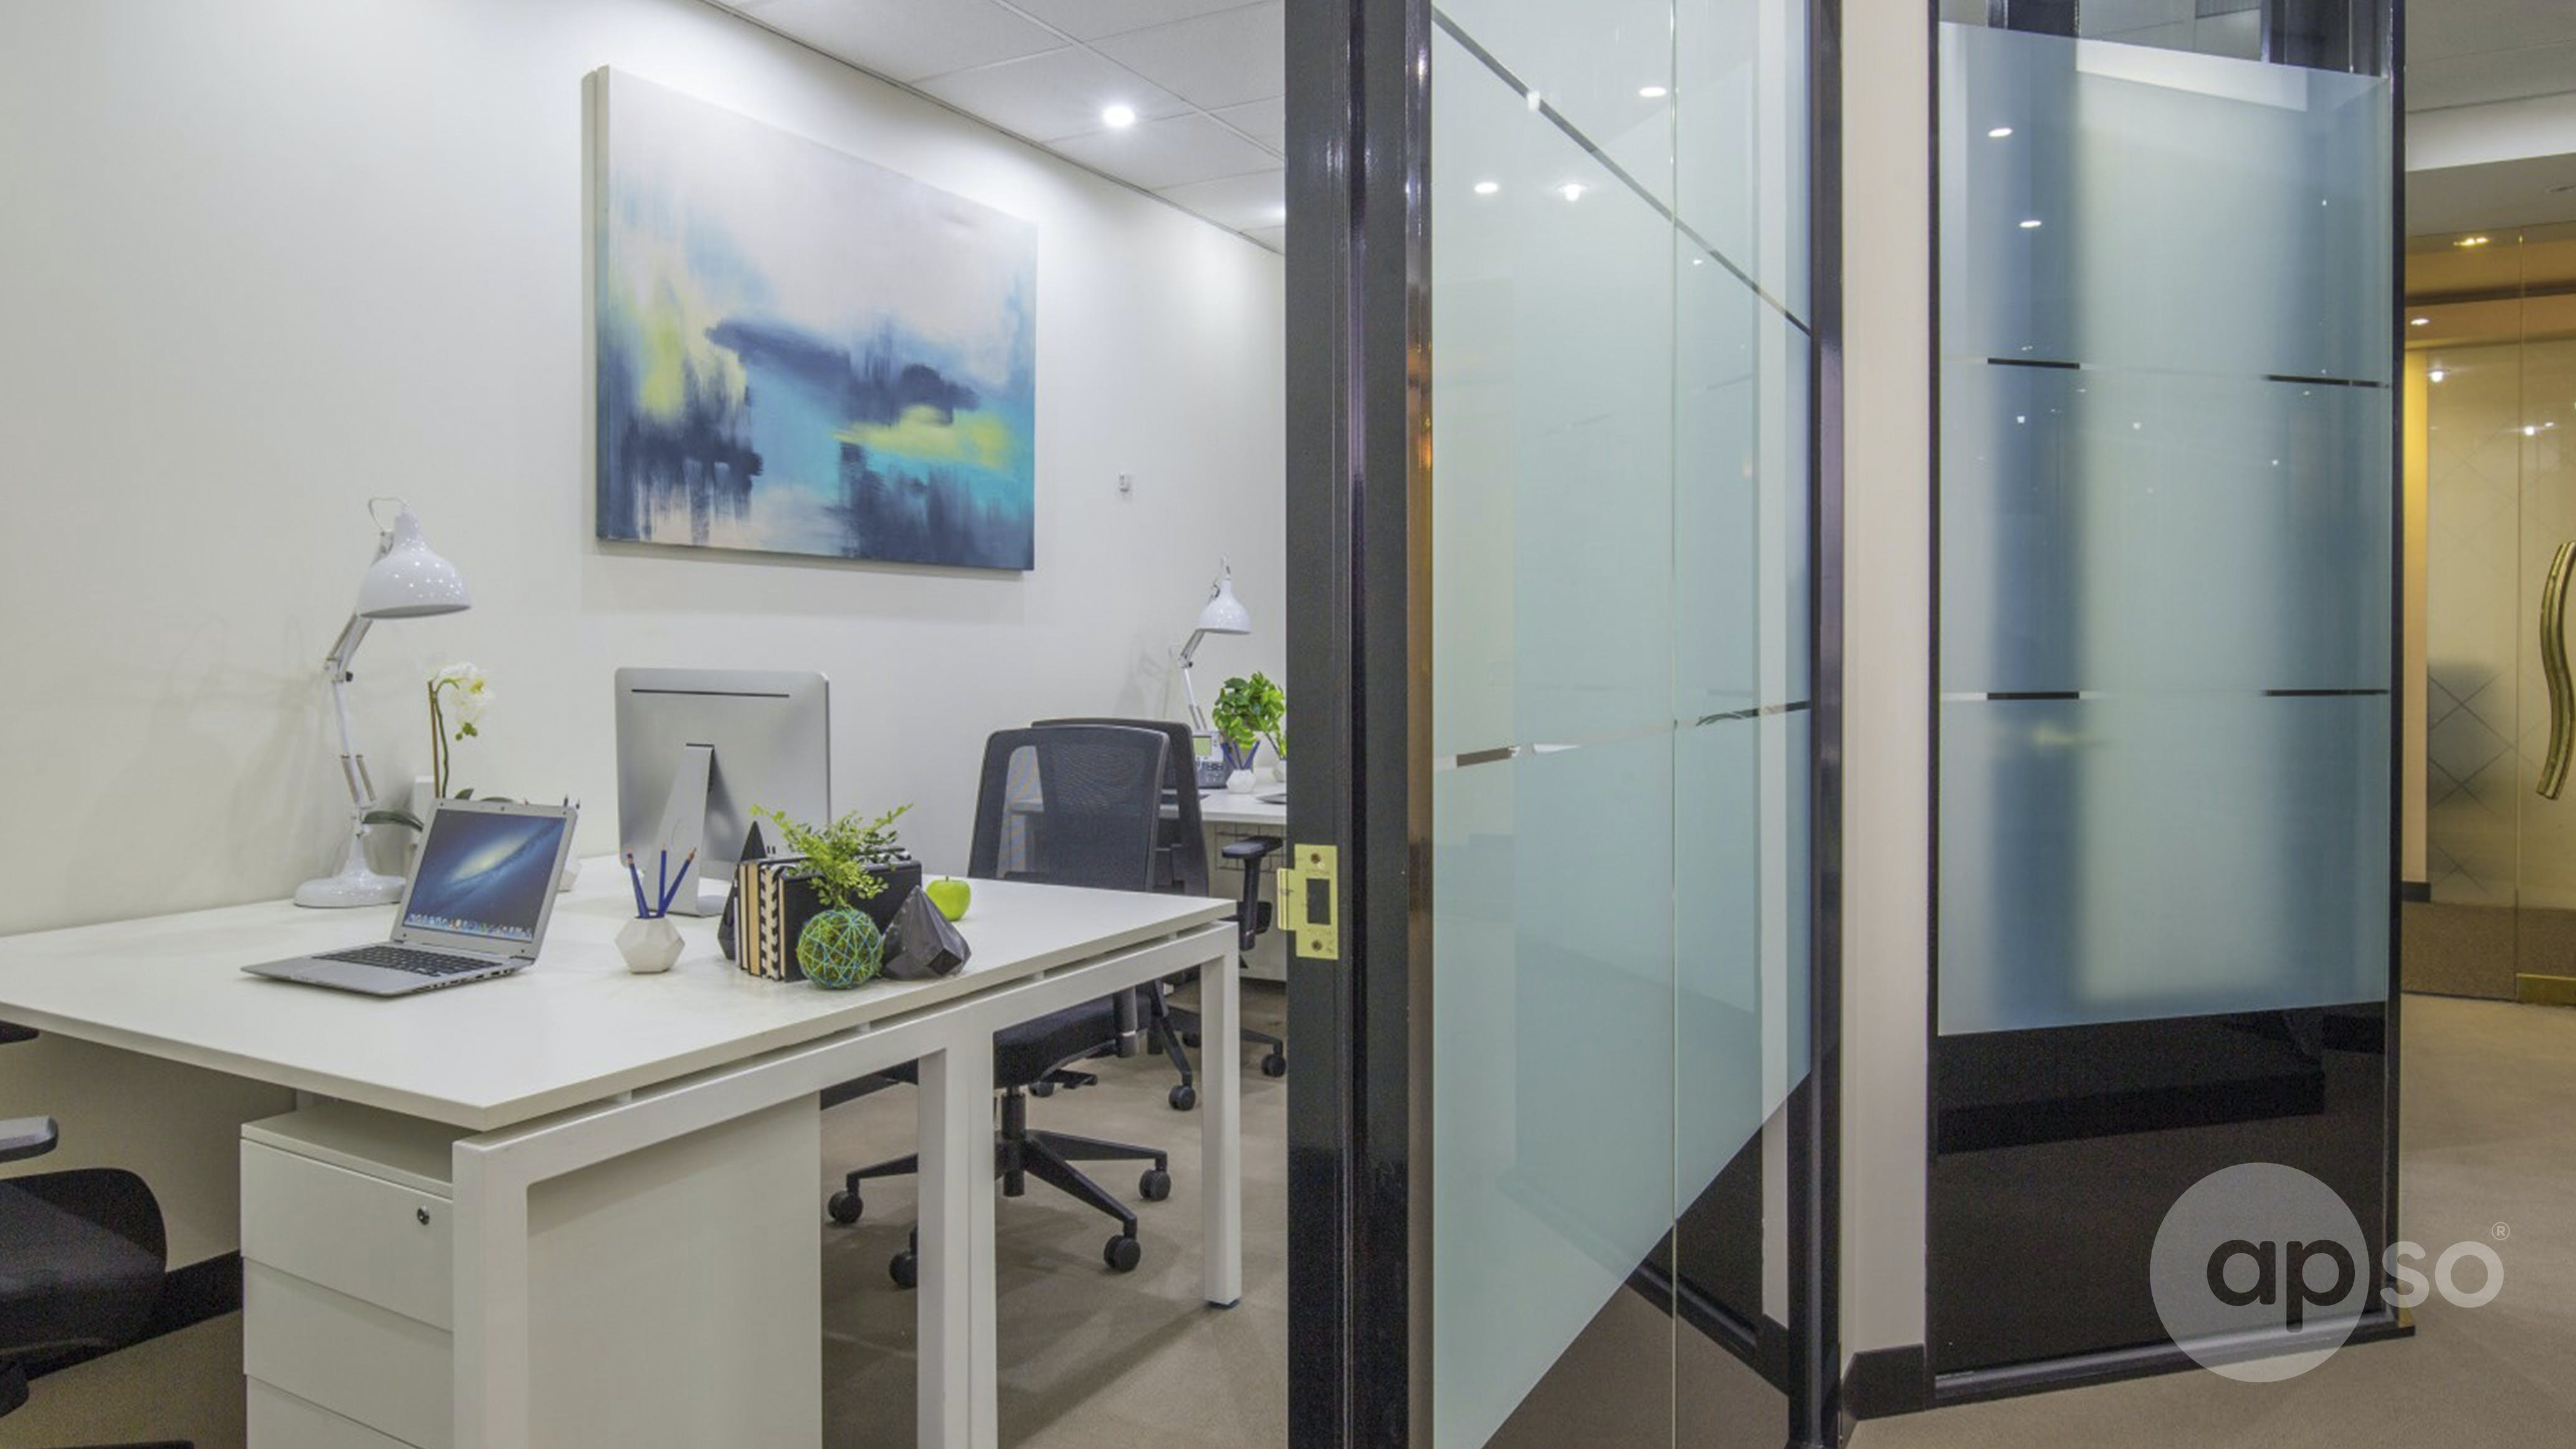 Suite 1138, private office at St Kilda Rd Towers, image 4